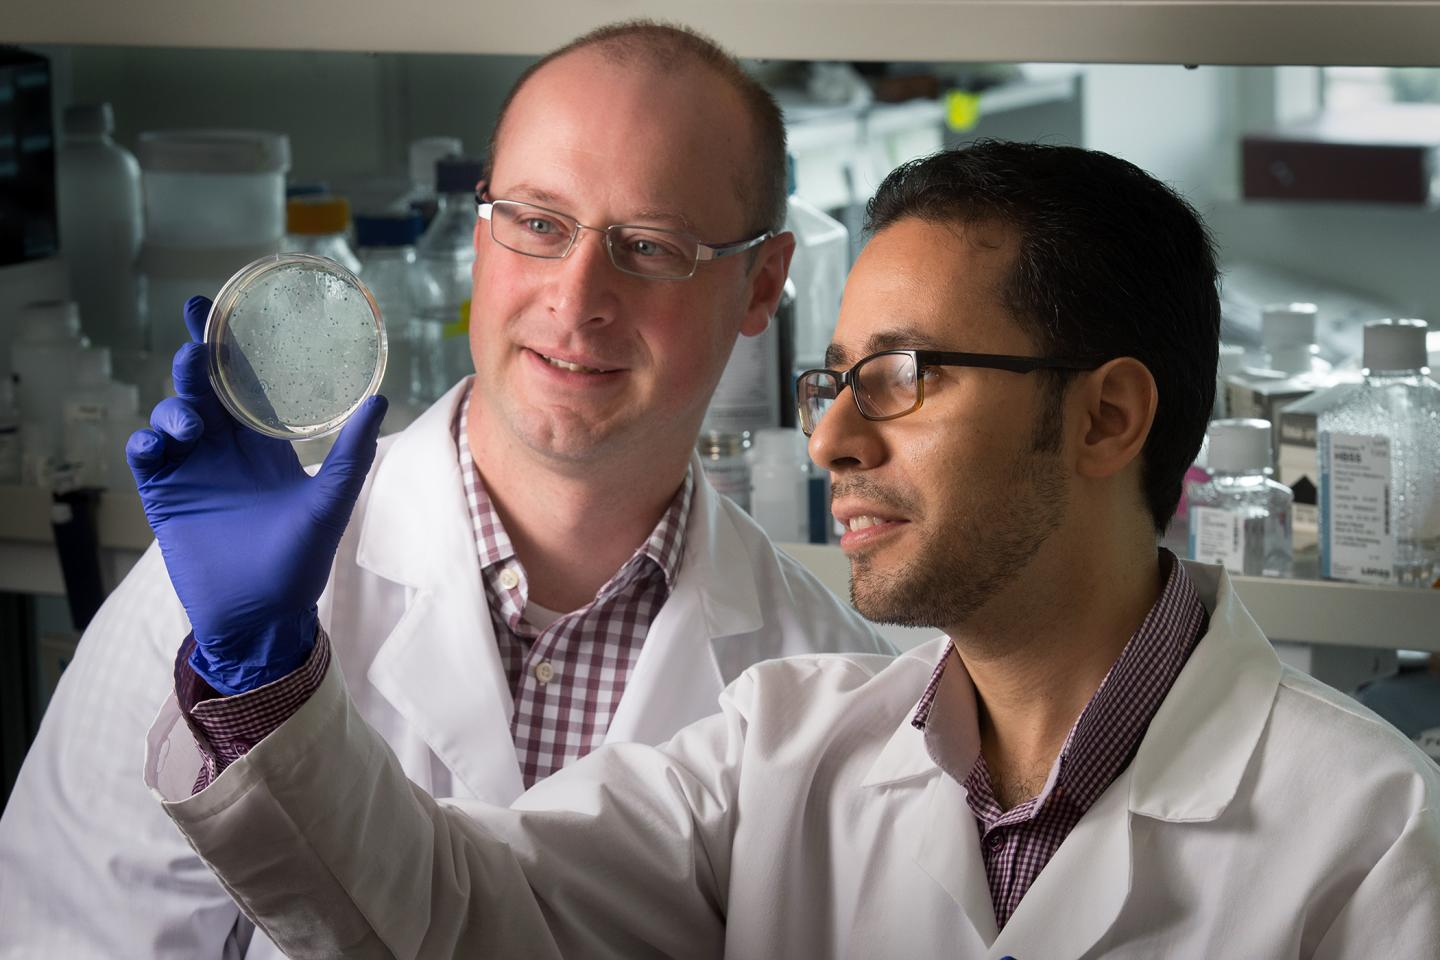 Corresponding author Benjamin Youngblood, PhD with first author Hazem Ghoneim. Credit: Seth Dixon / St. Jude Children's Research Hospital